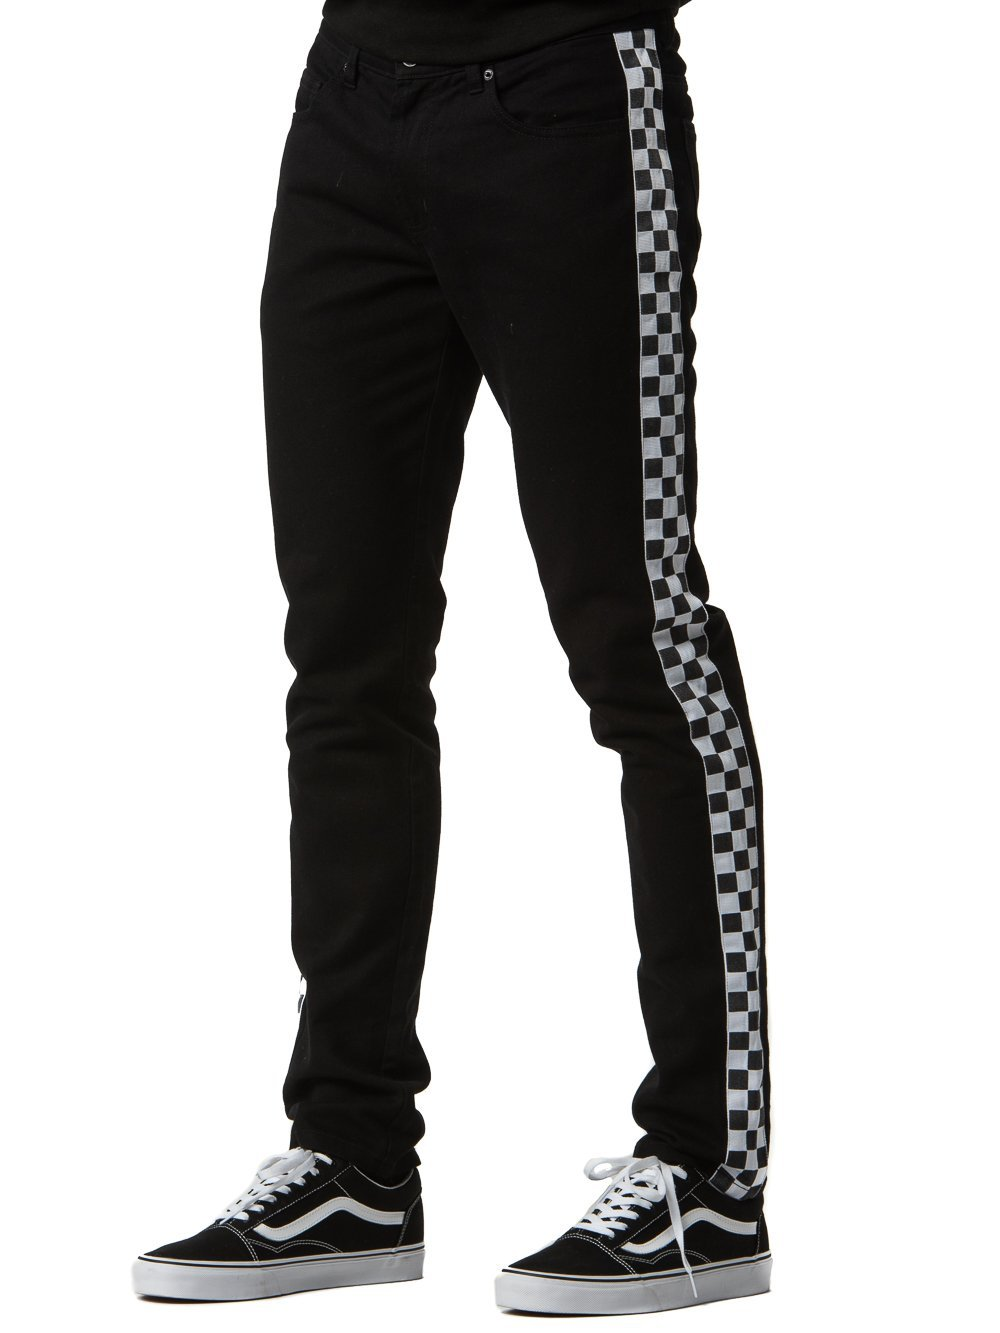 special promotion promo codes quality design Griffon Jeans - Black - Young & Reckless